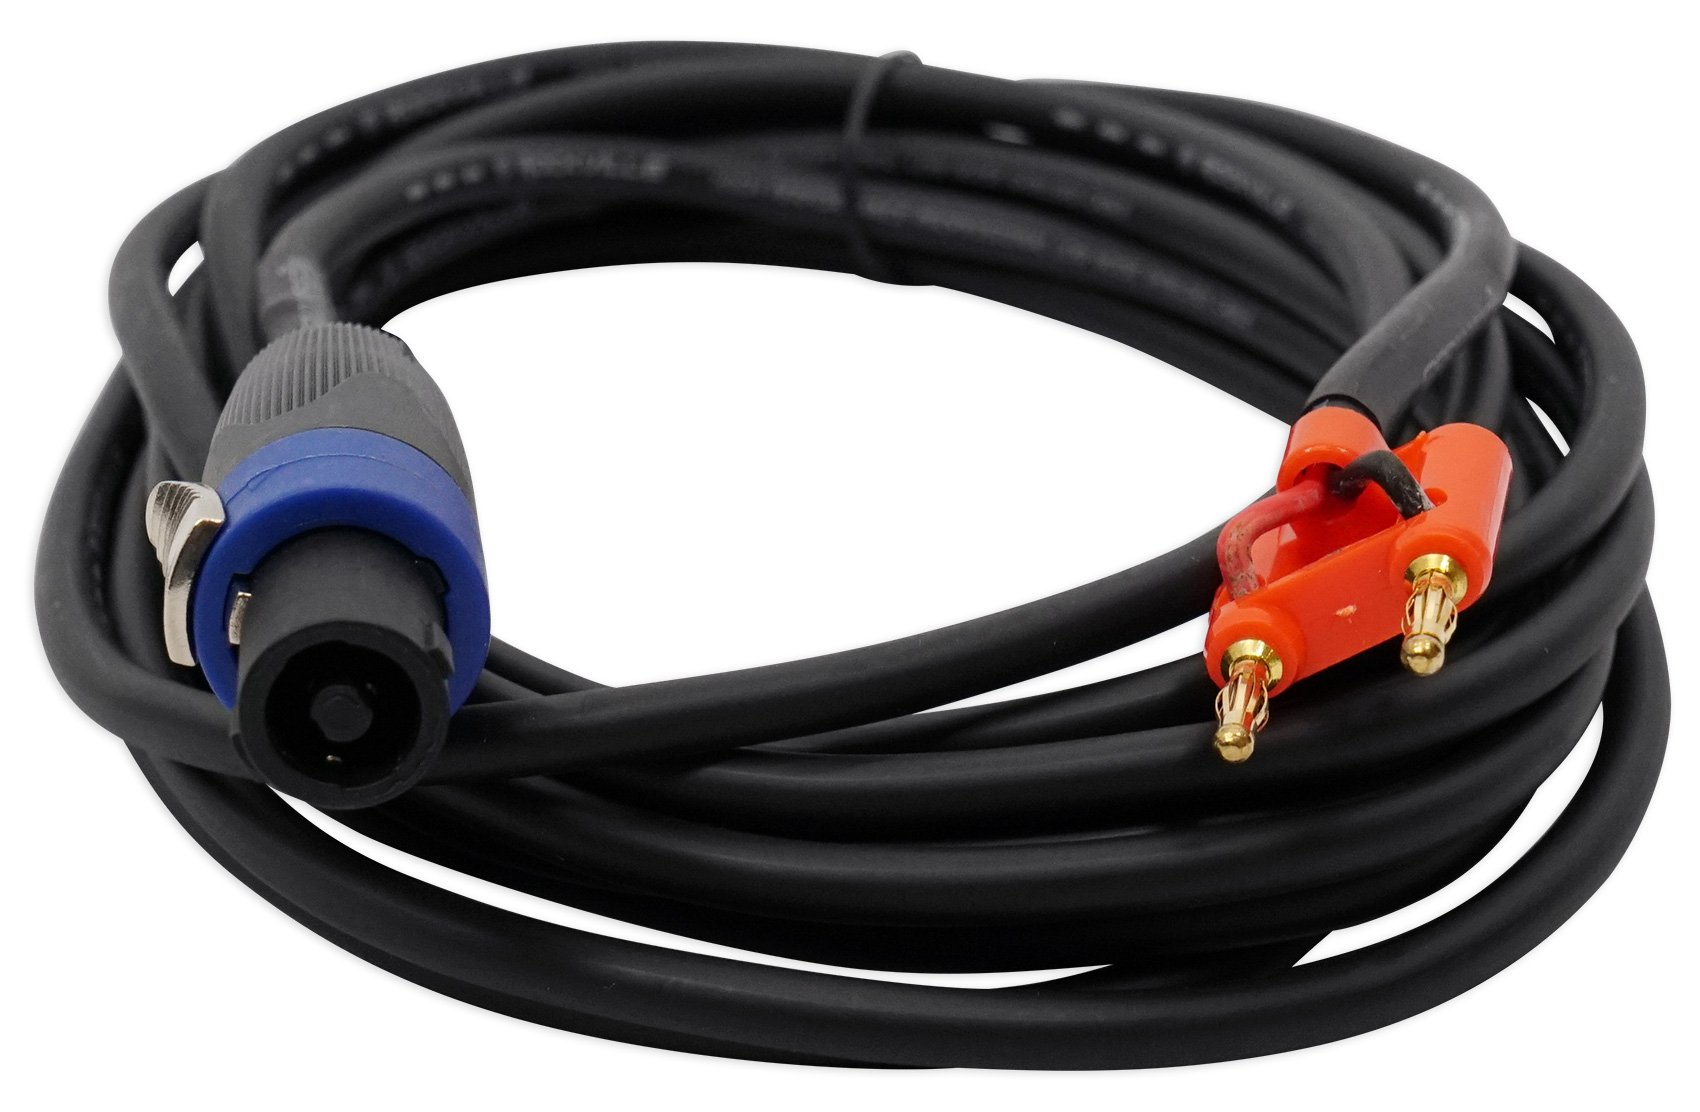 Rockville RSB16 20 Foot Speakon to Banana Speaker Cable, 16 Gauge, 100% Copper! by Rockville